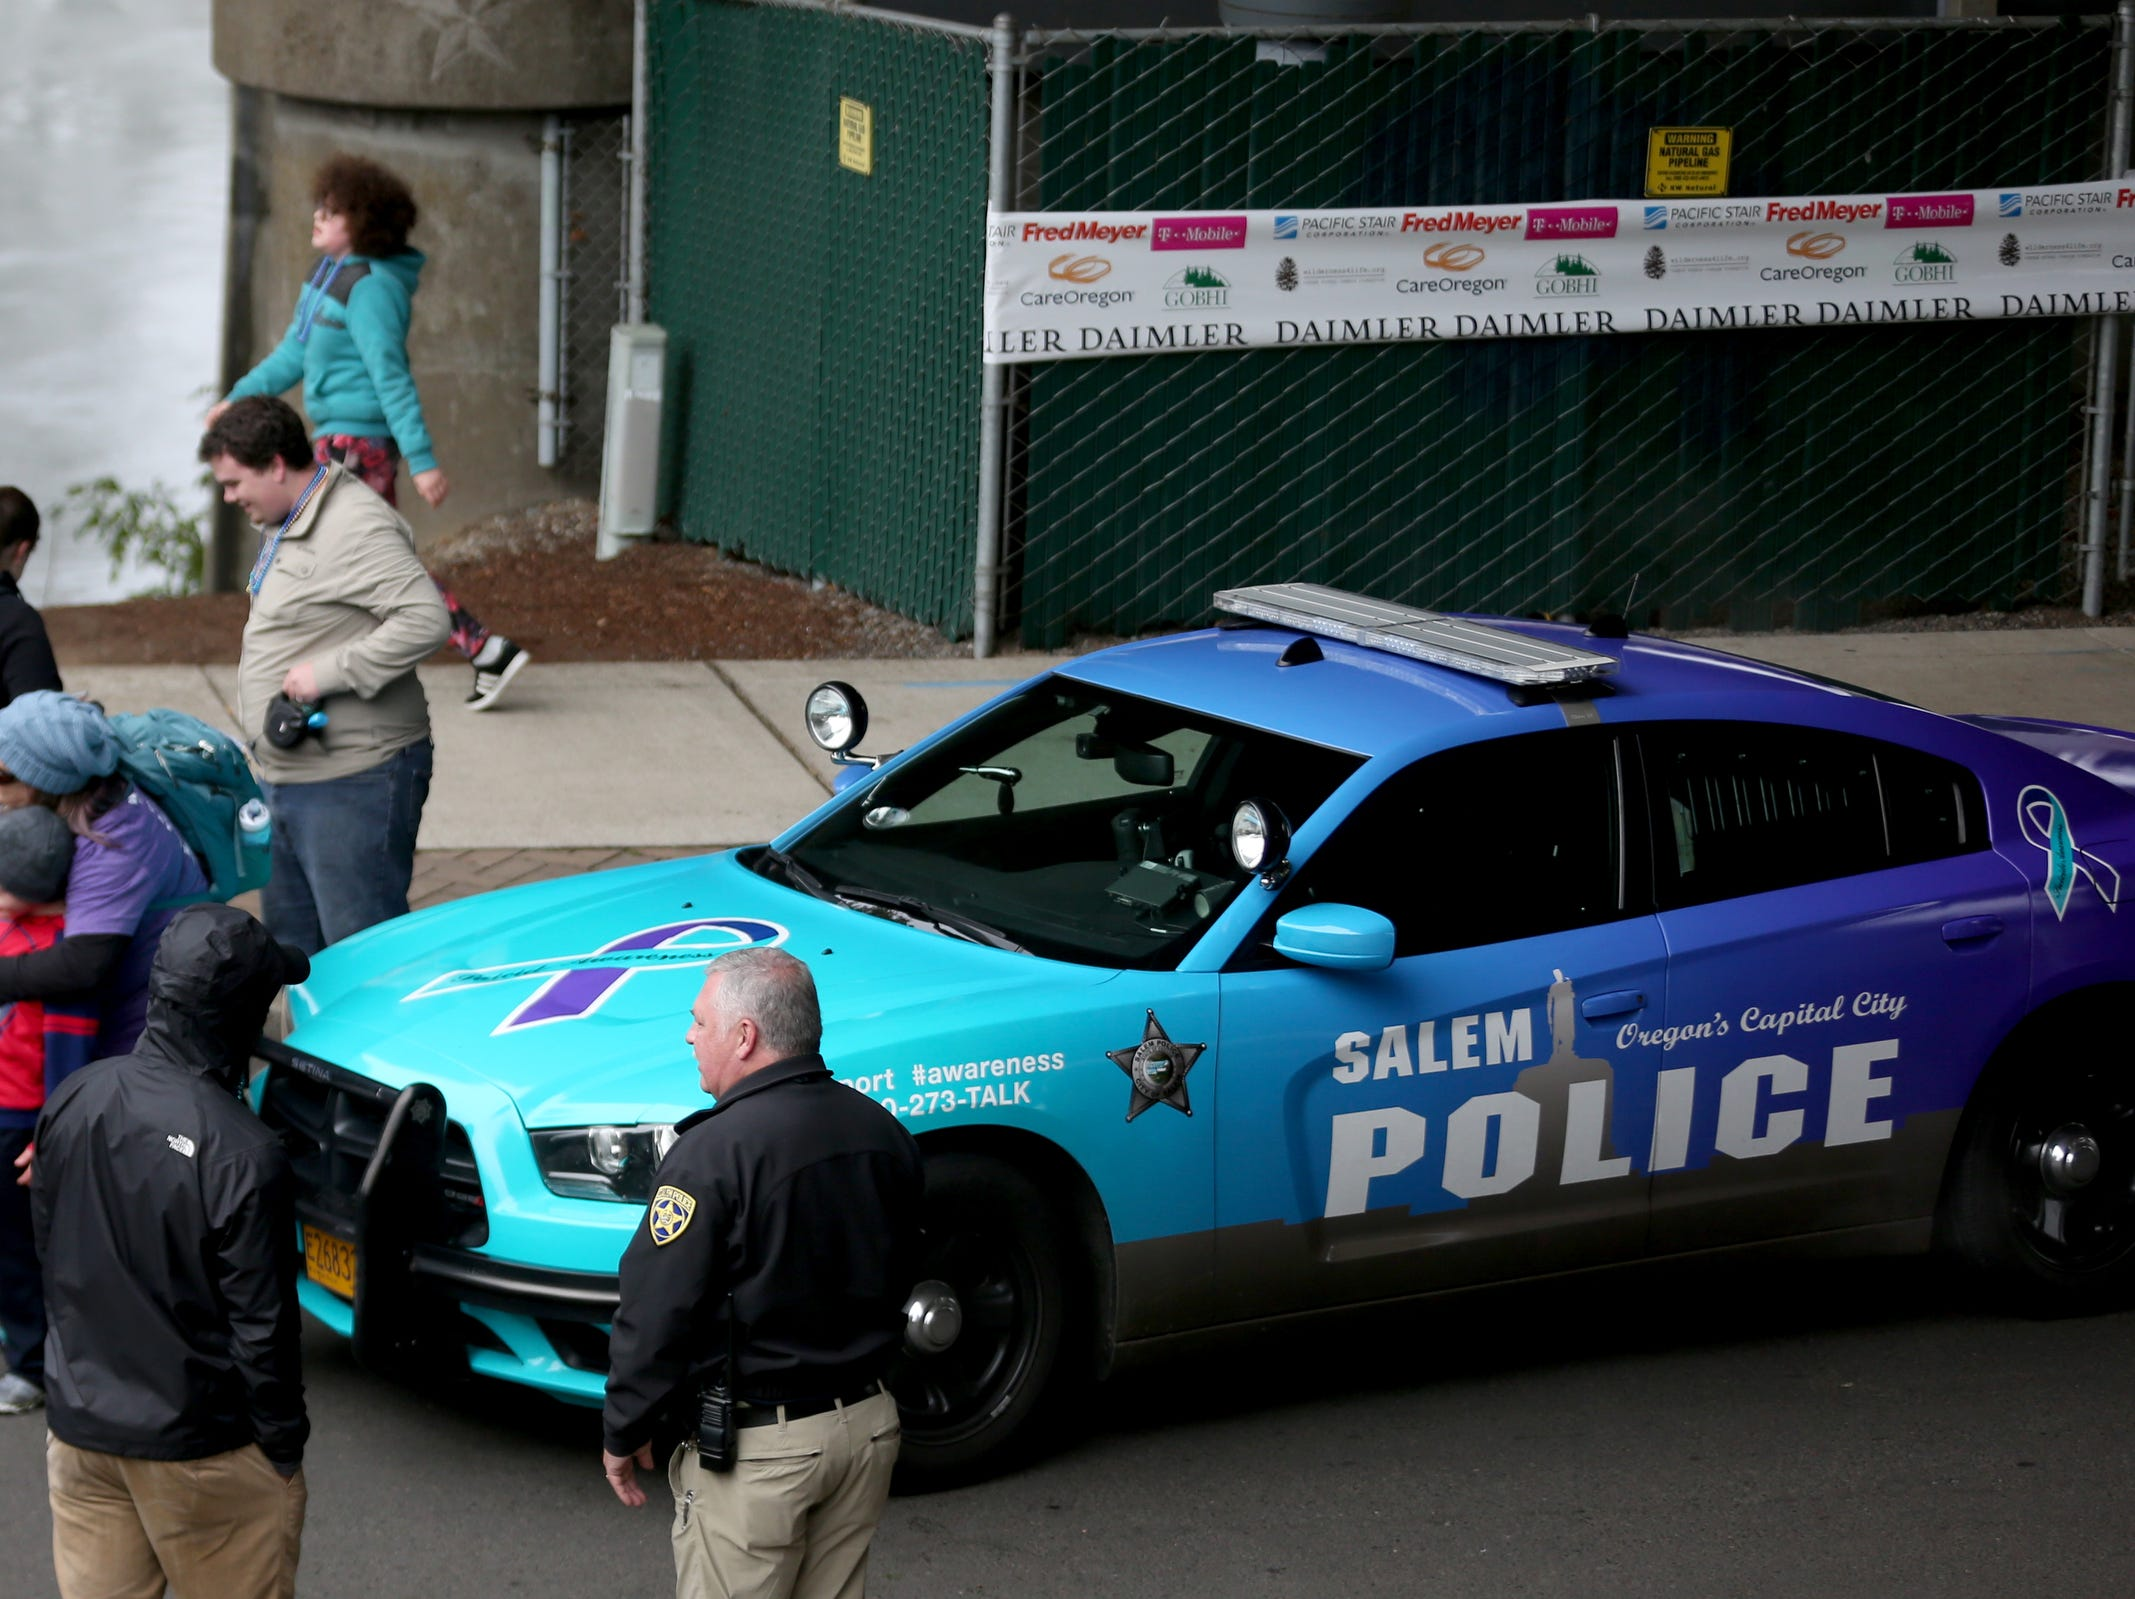 A Salem Police car wrapped in turquoise and purple to raise awareness for suicide prevention during the Out of the Darkness walk at Riverfront Park in Salem on Saturday, Oct. 14, 2017.